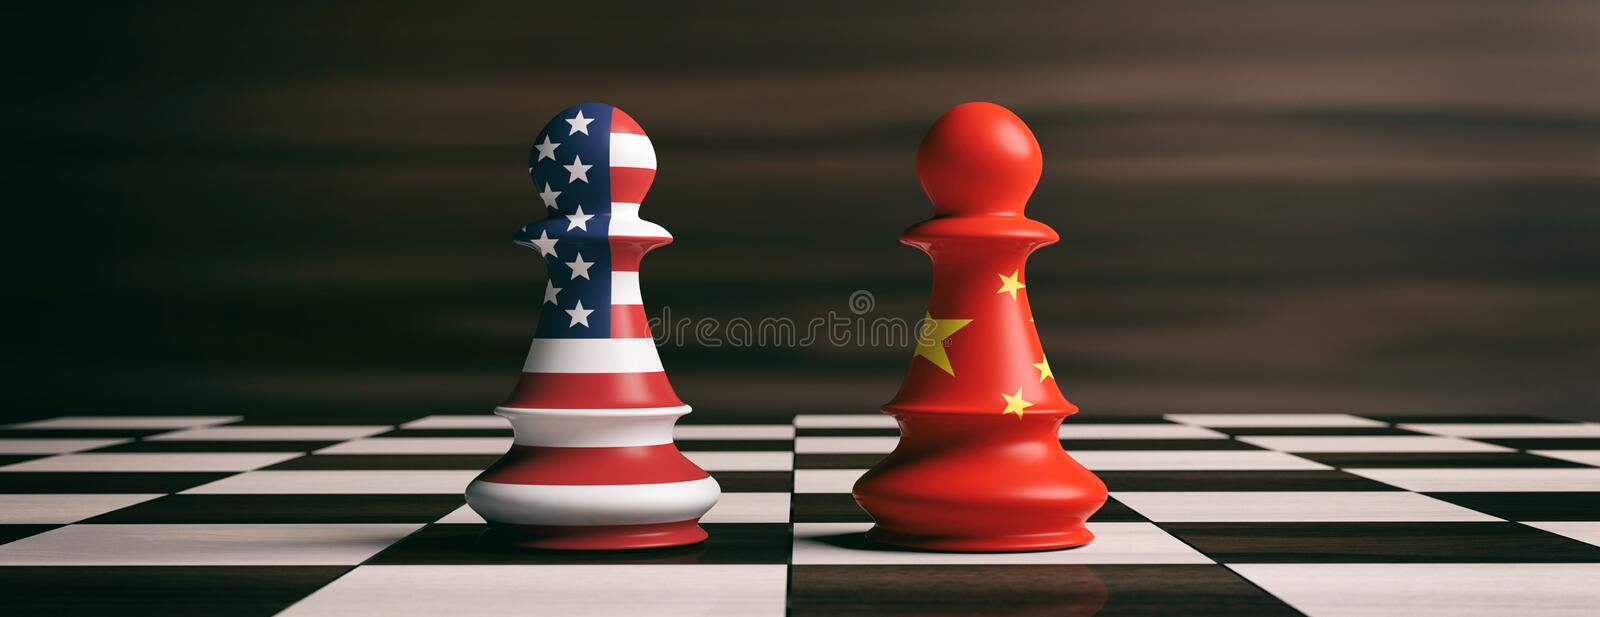 USA and China flags on chess pawns on a chessboard. 3d illustration stock illustration